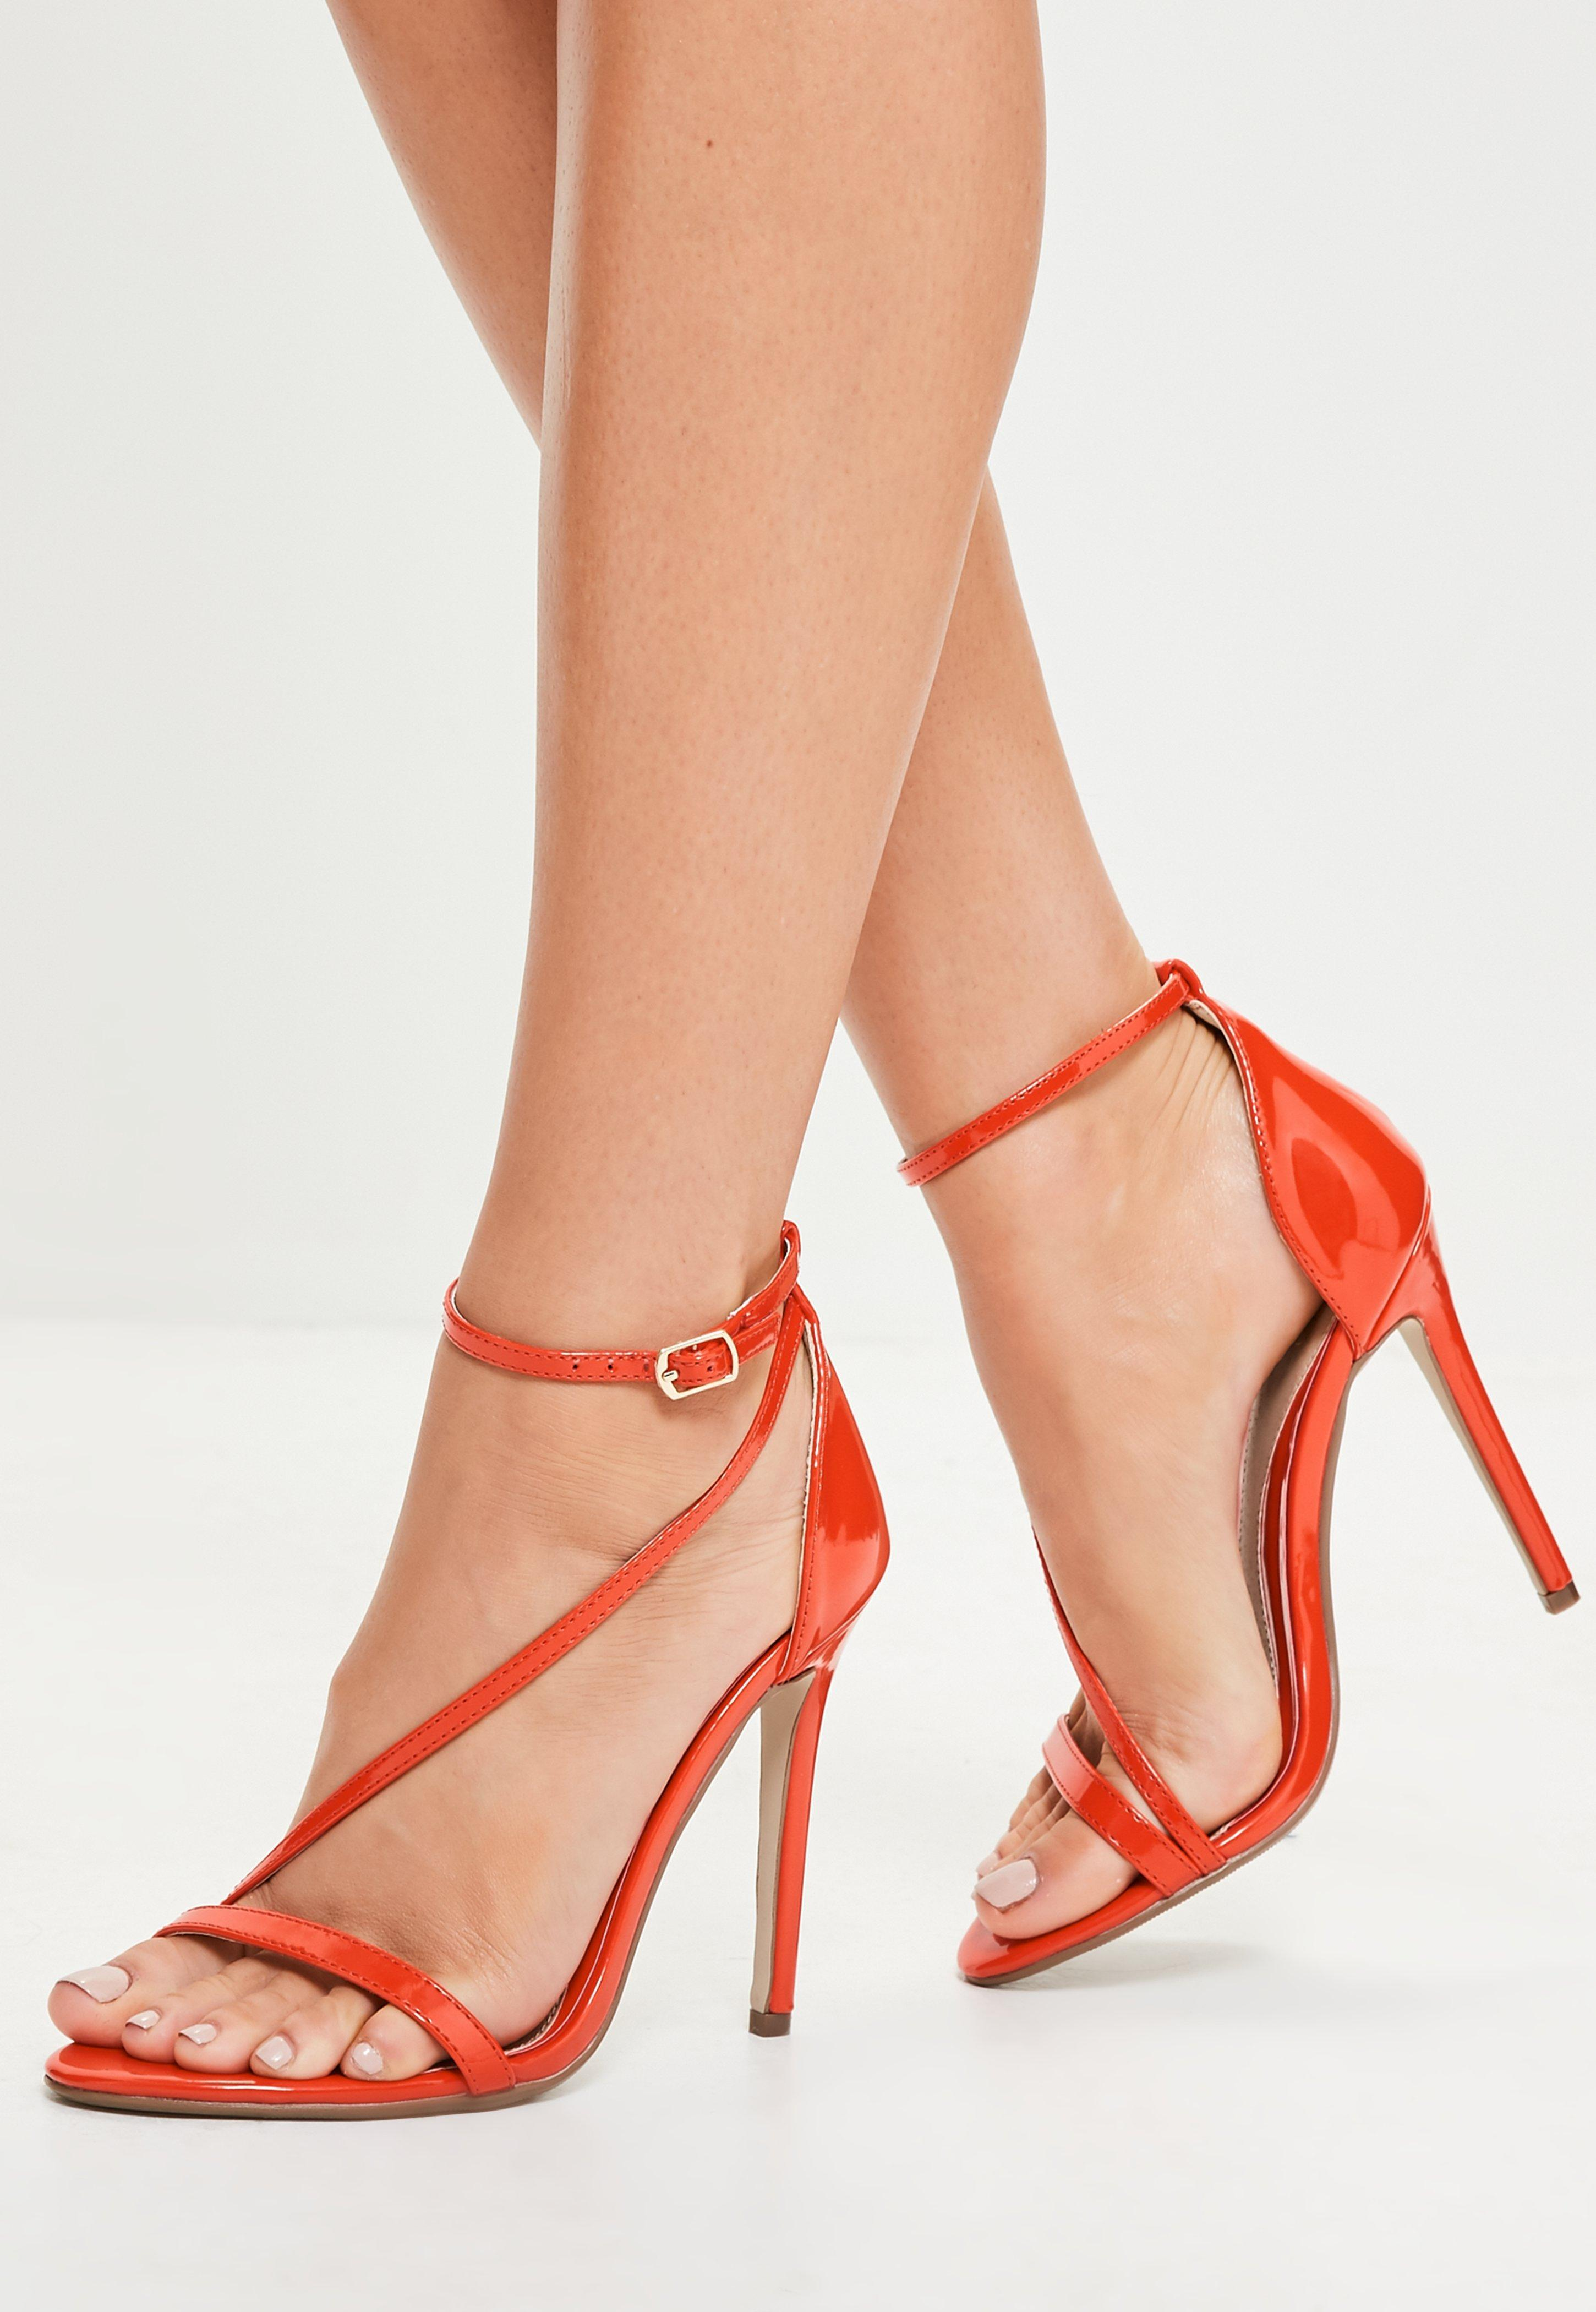 567f4a36b0c3 Missguided Orange Asymmetric Barely There Heels in Orange - Lyst